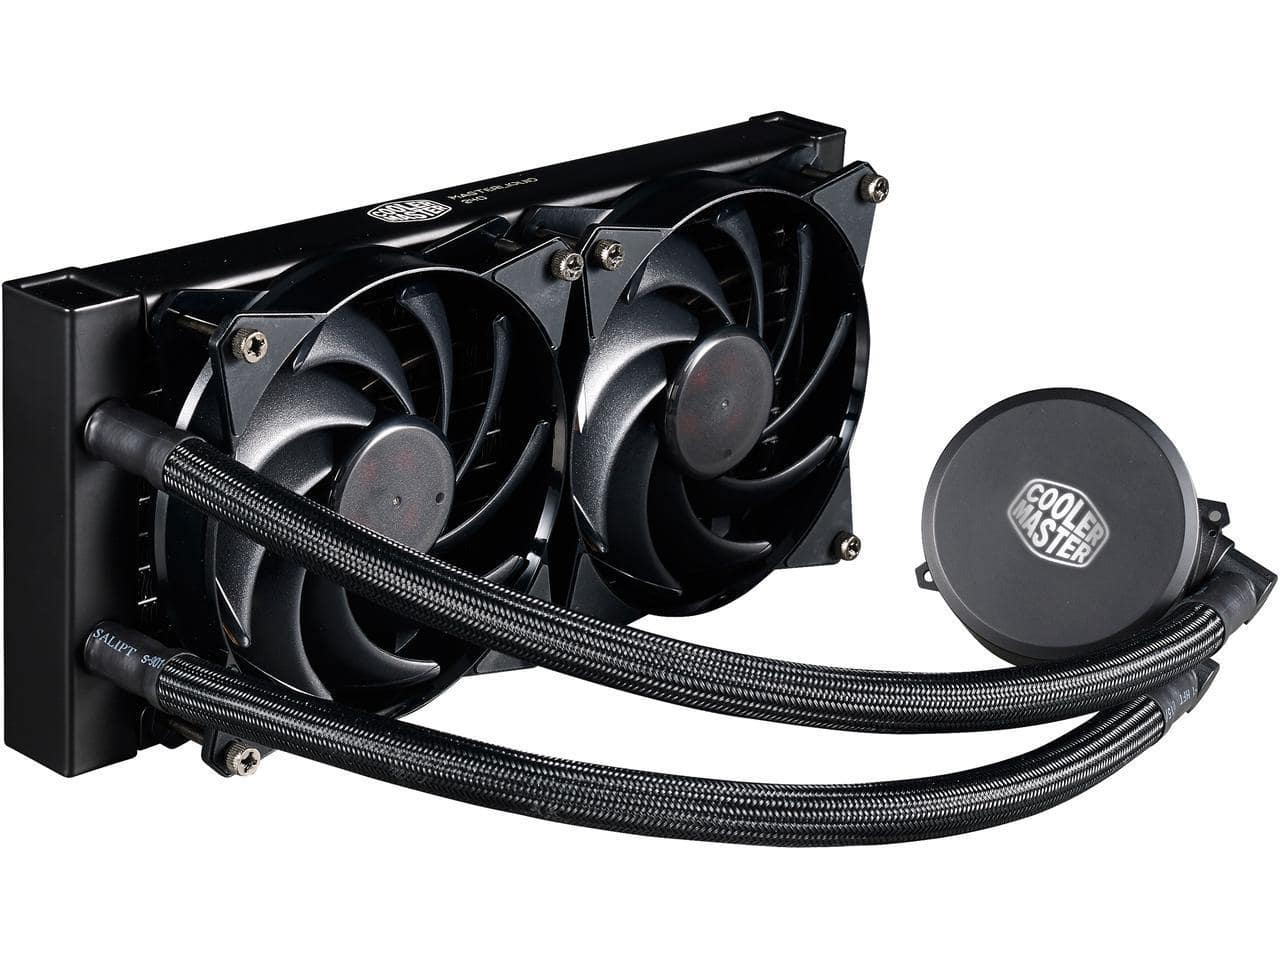 MasterLiquid 240 All-in-one CPU Liquid Cooler with Dual Chamber Pump by Cooler Master - $40 AC Shipped